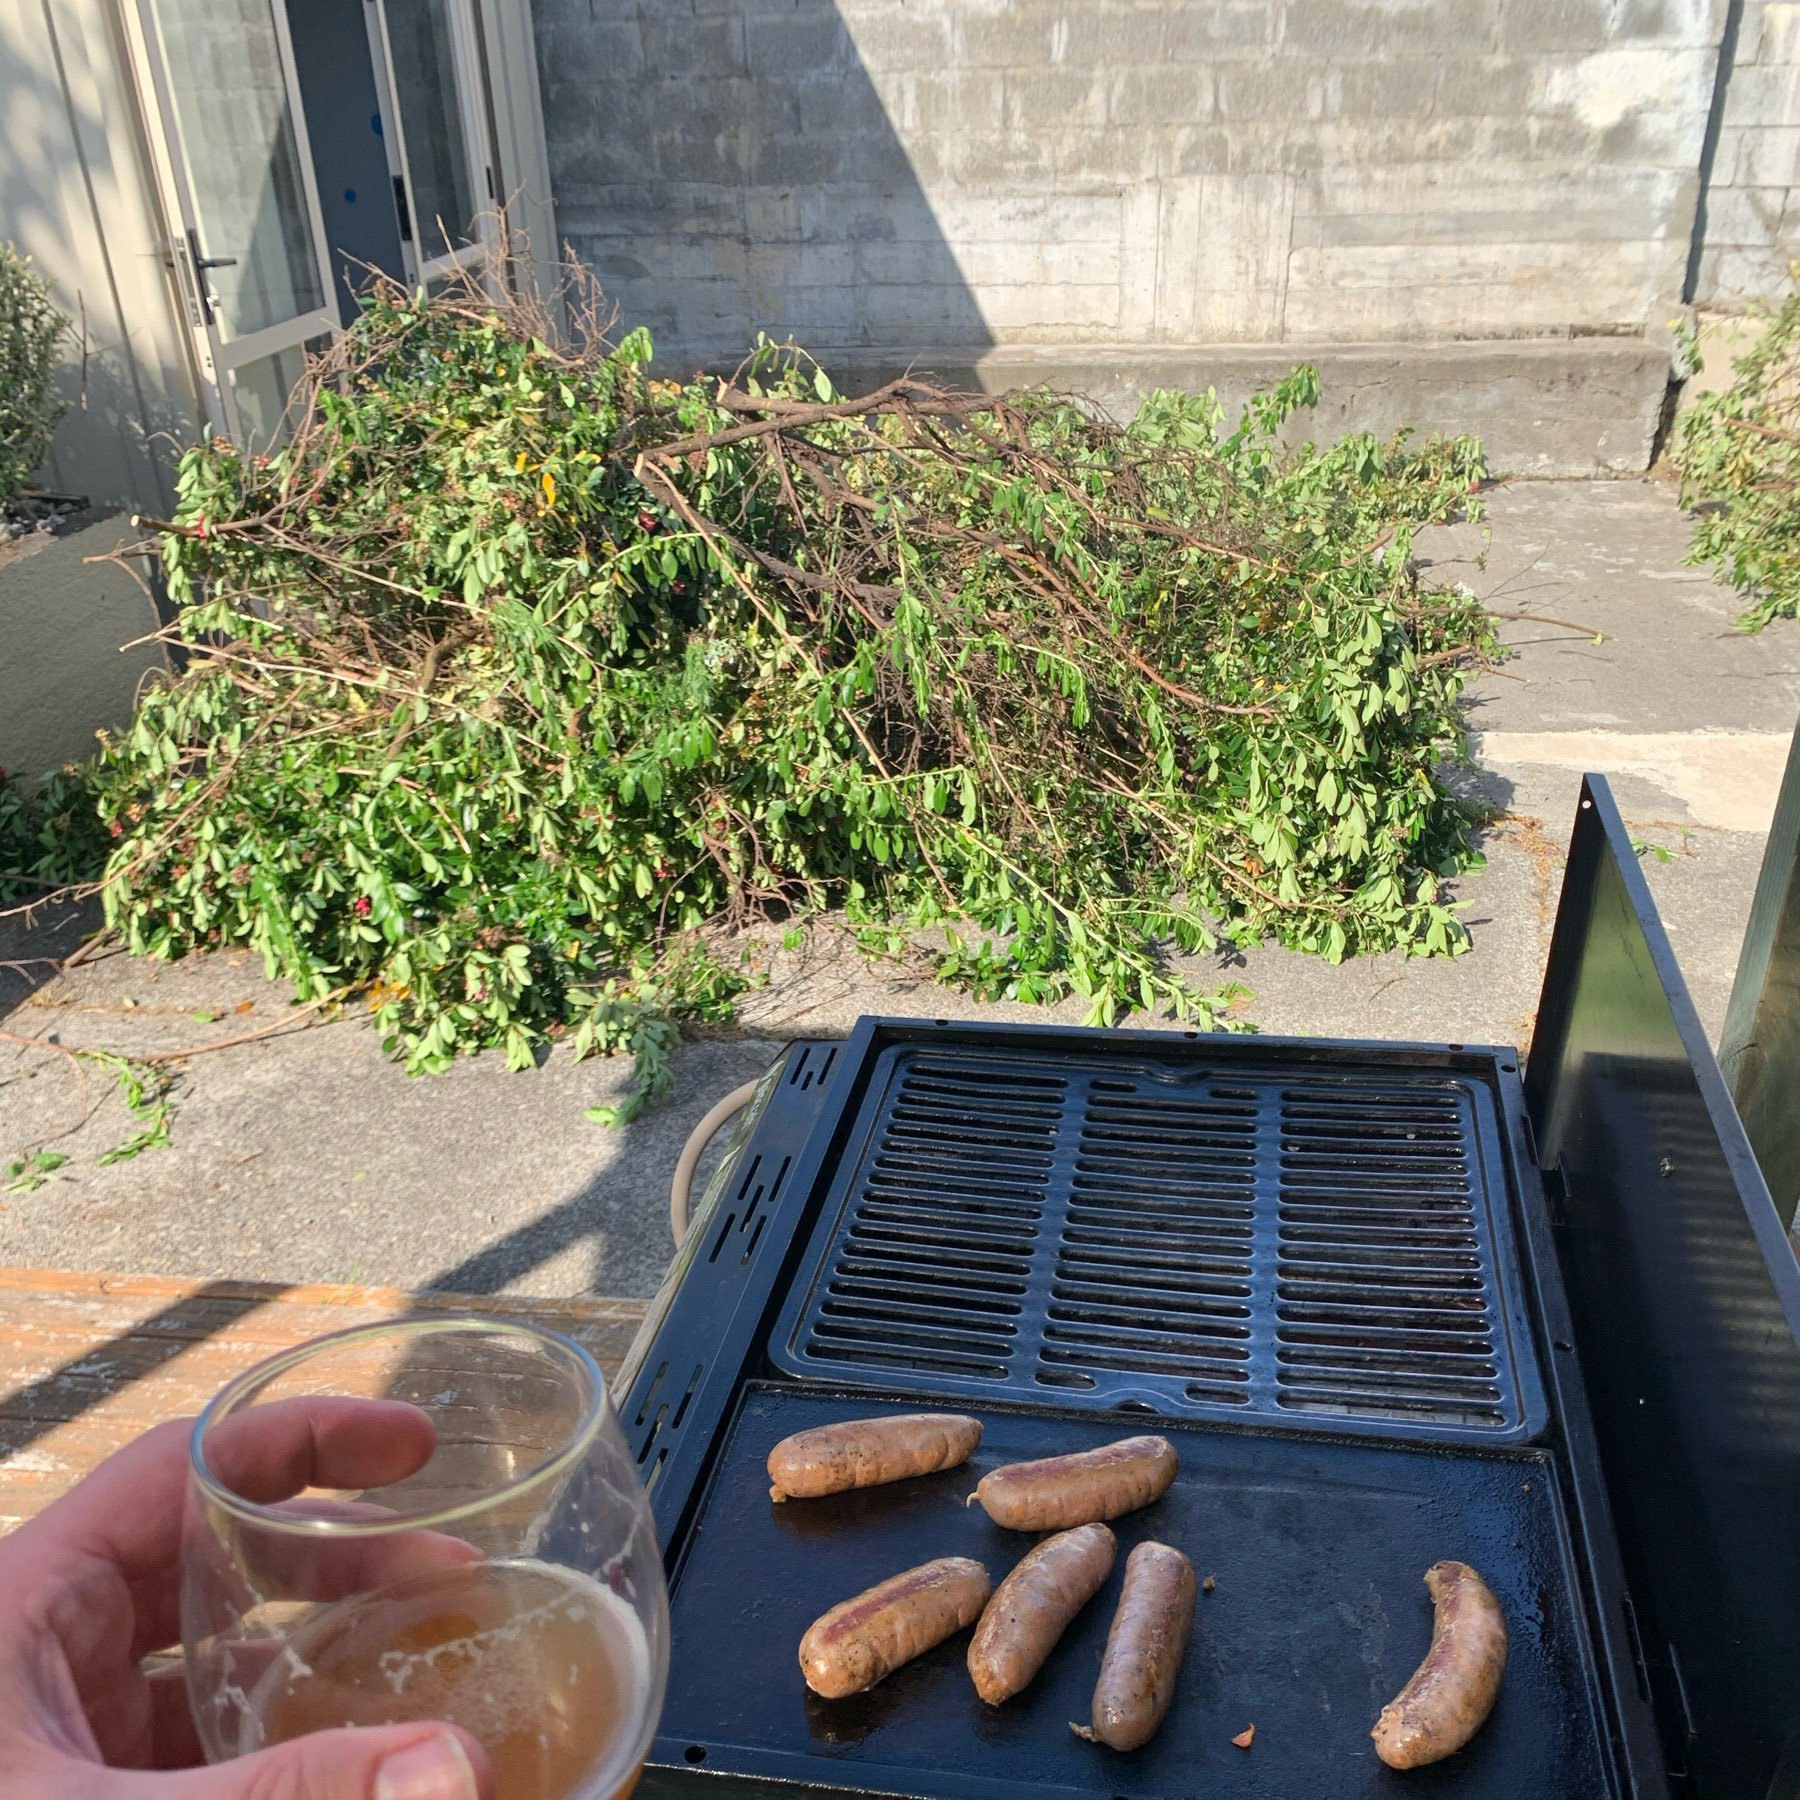 me hold a beer in front of sausages cooking on a barbeque. i. the background is a big pile of tree branches I cut through